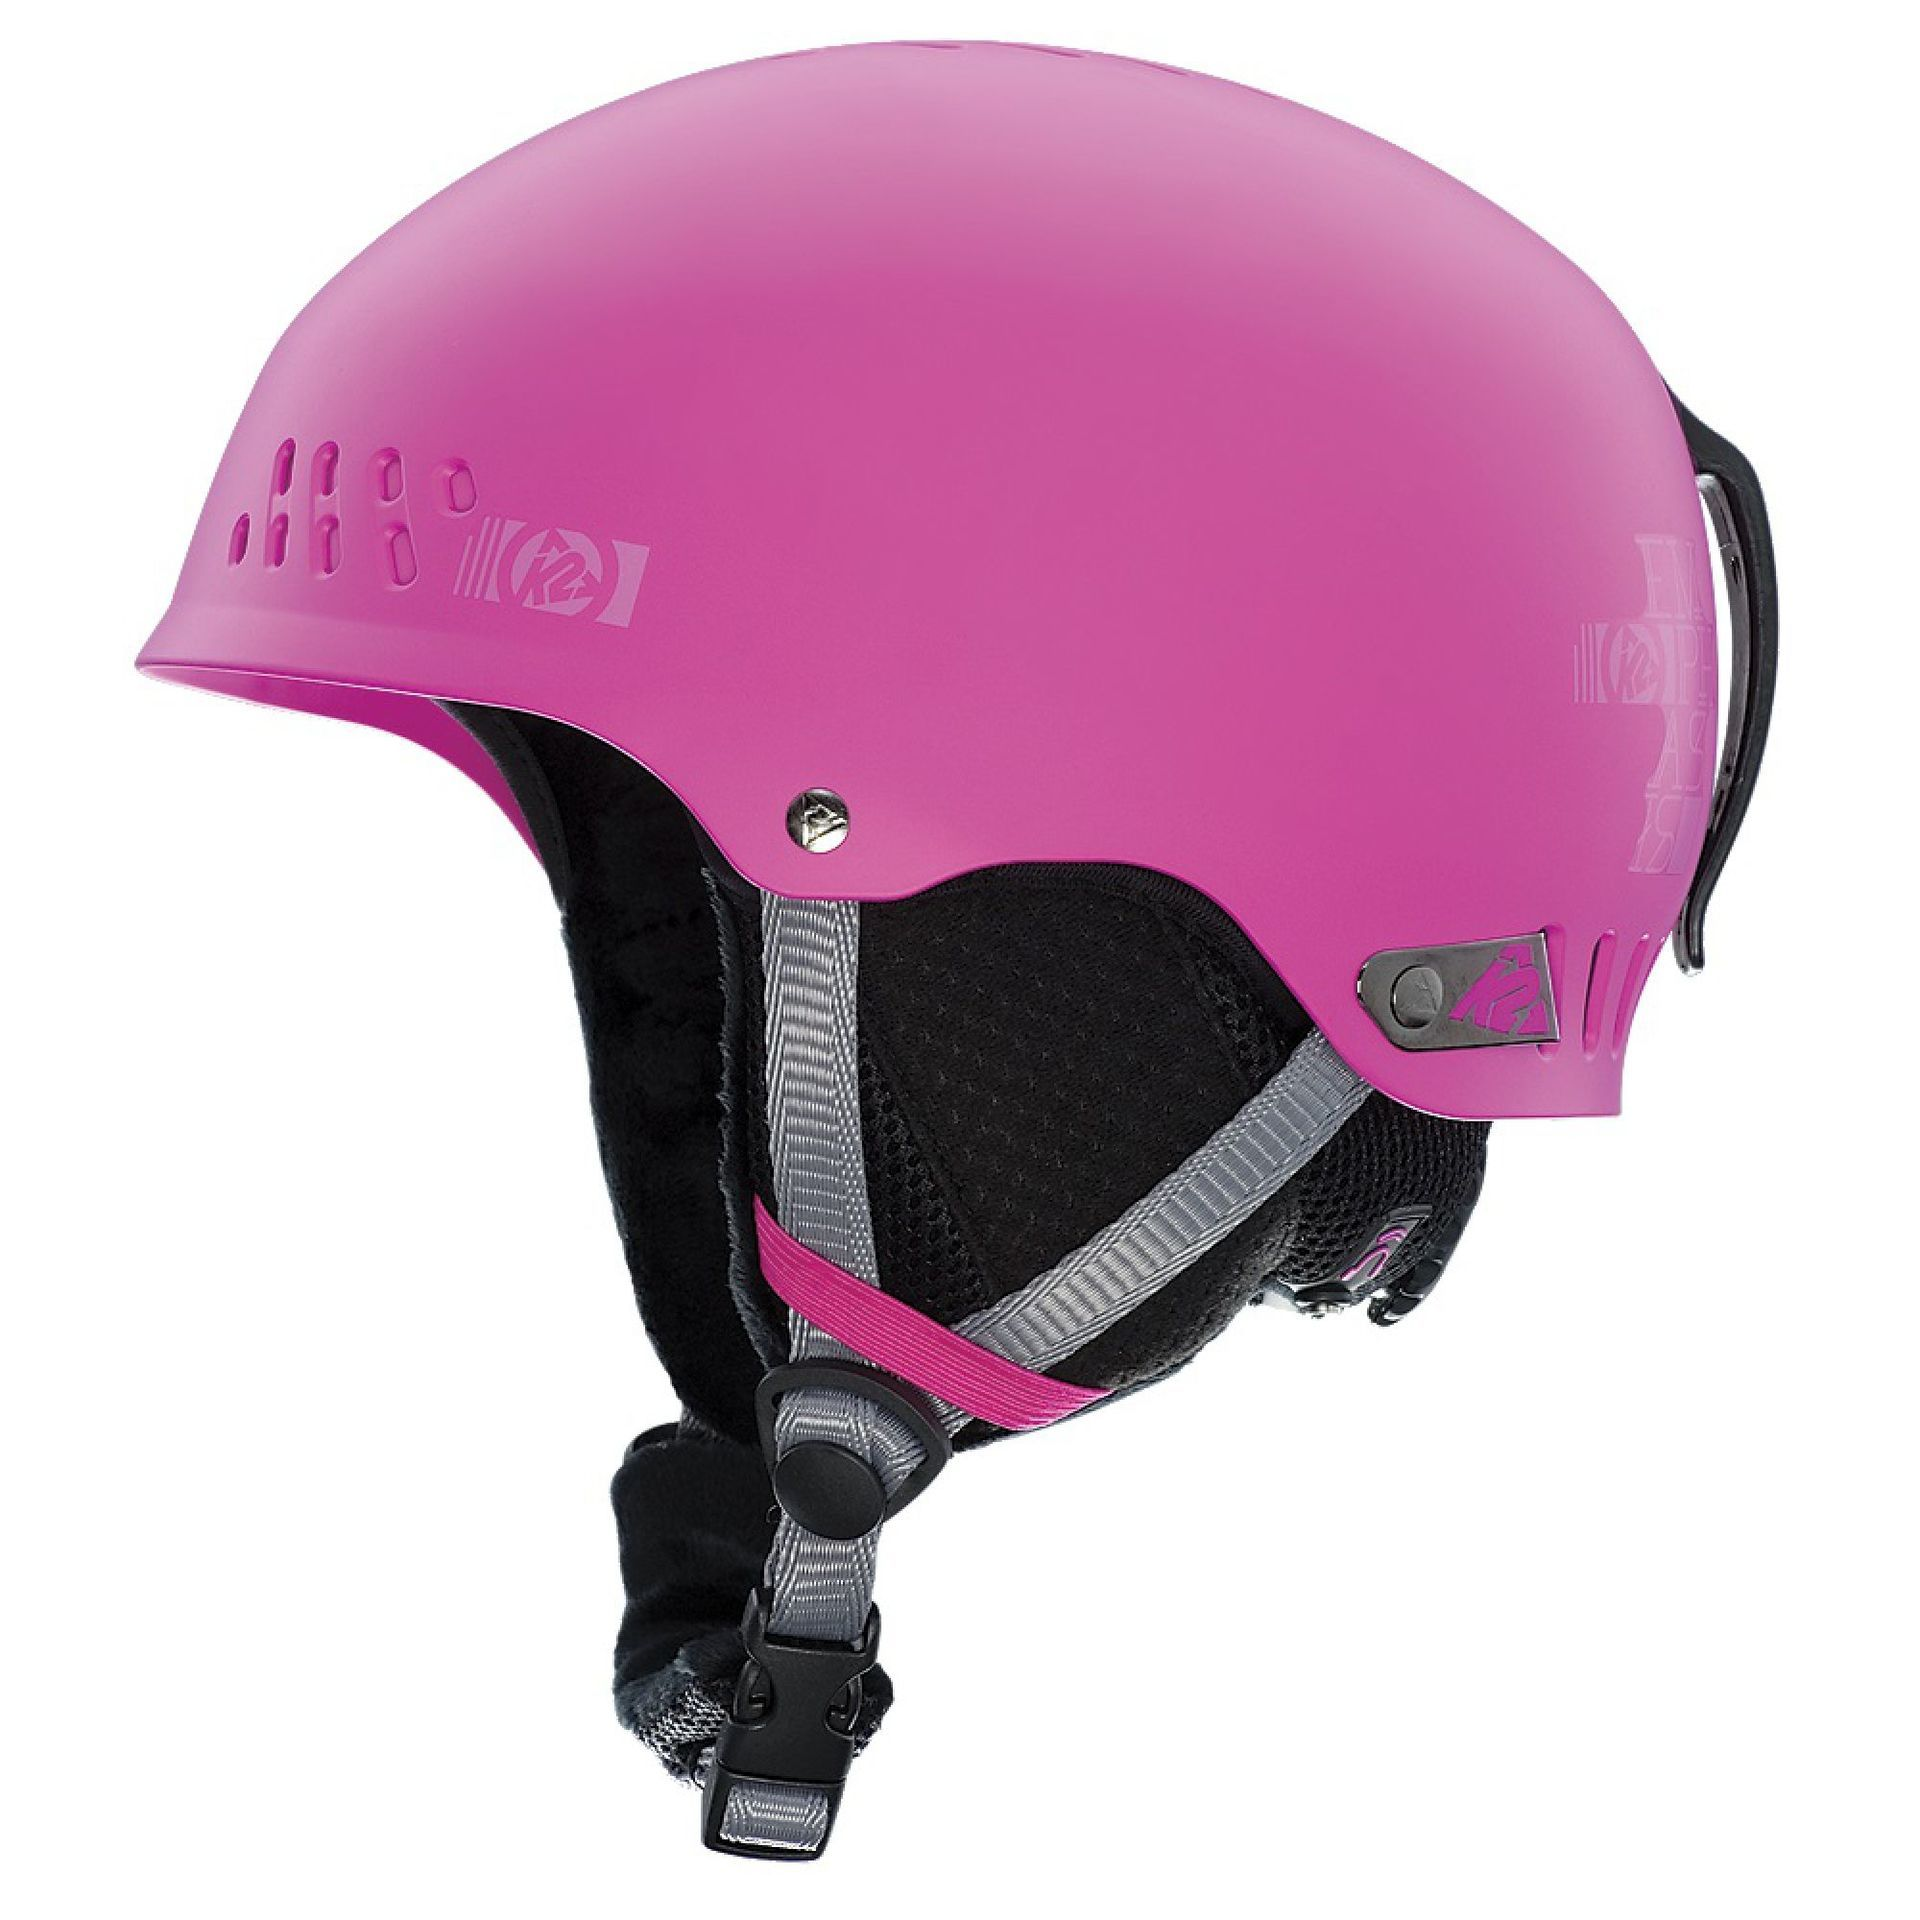 KASK K2 EMPHASIS PINK